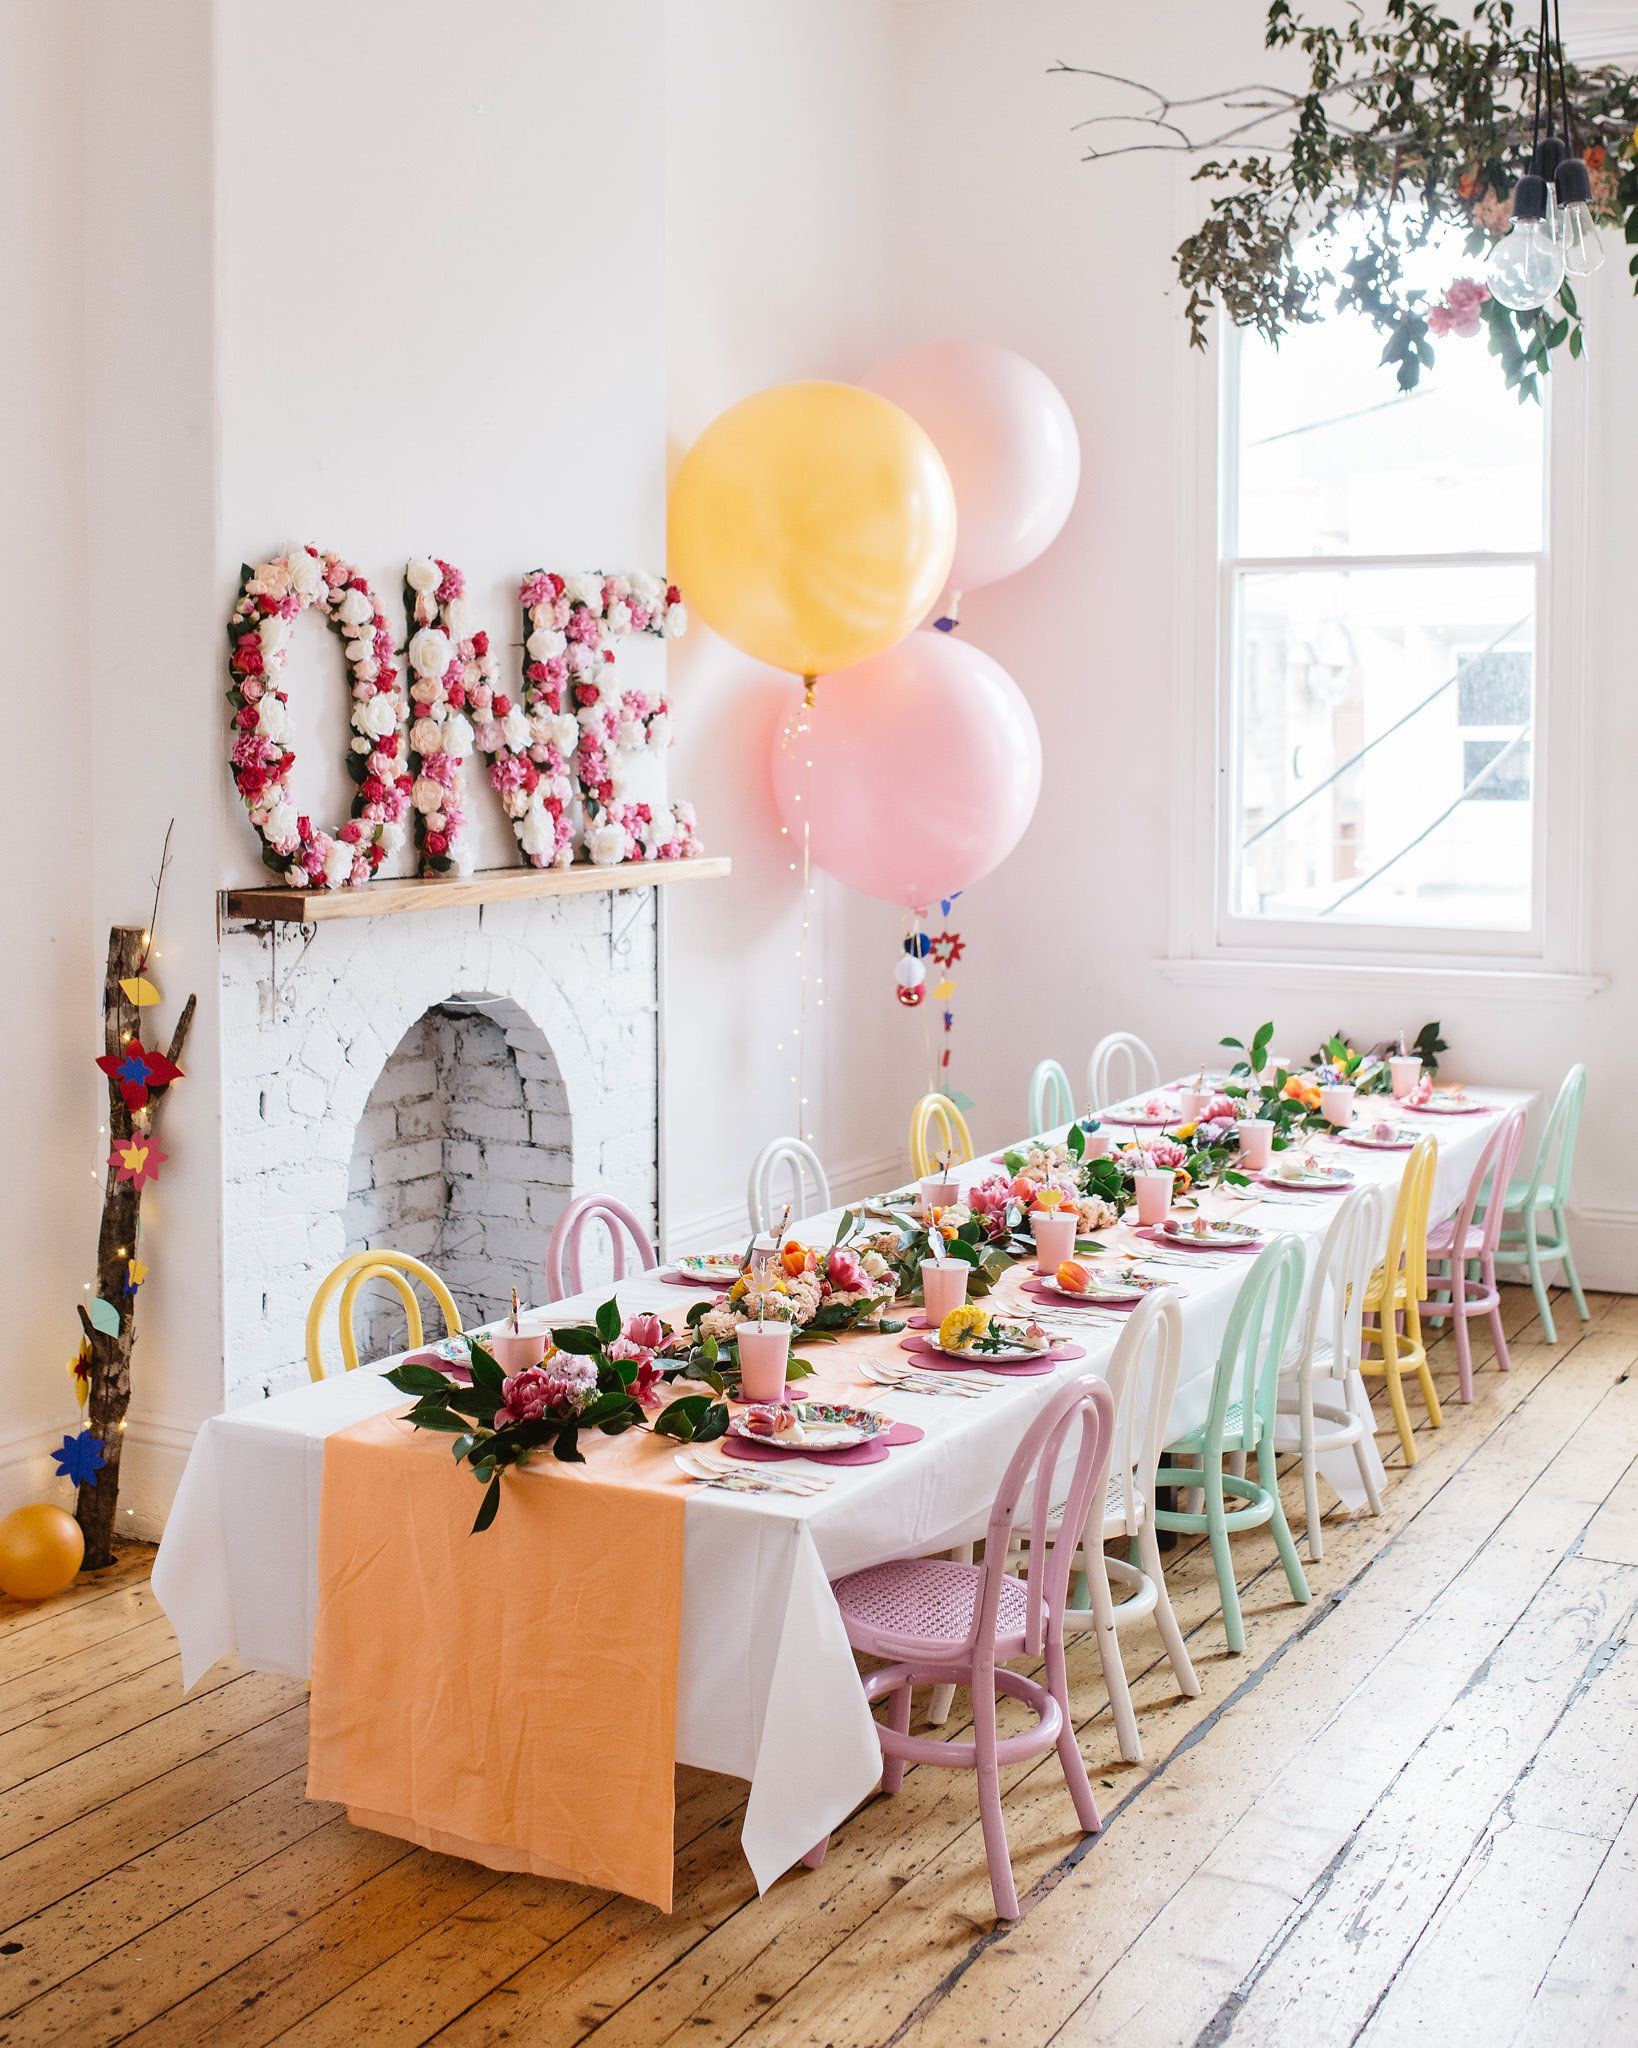 A Cute One Year Old Birthday Party Although One Might Be